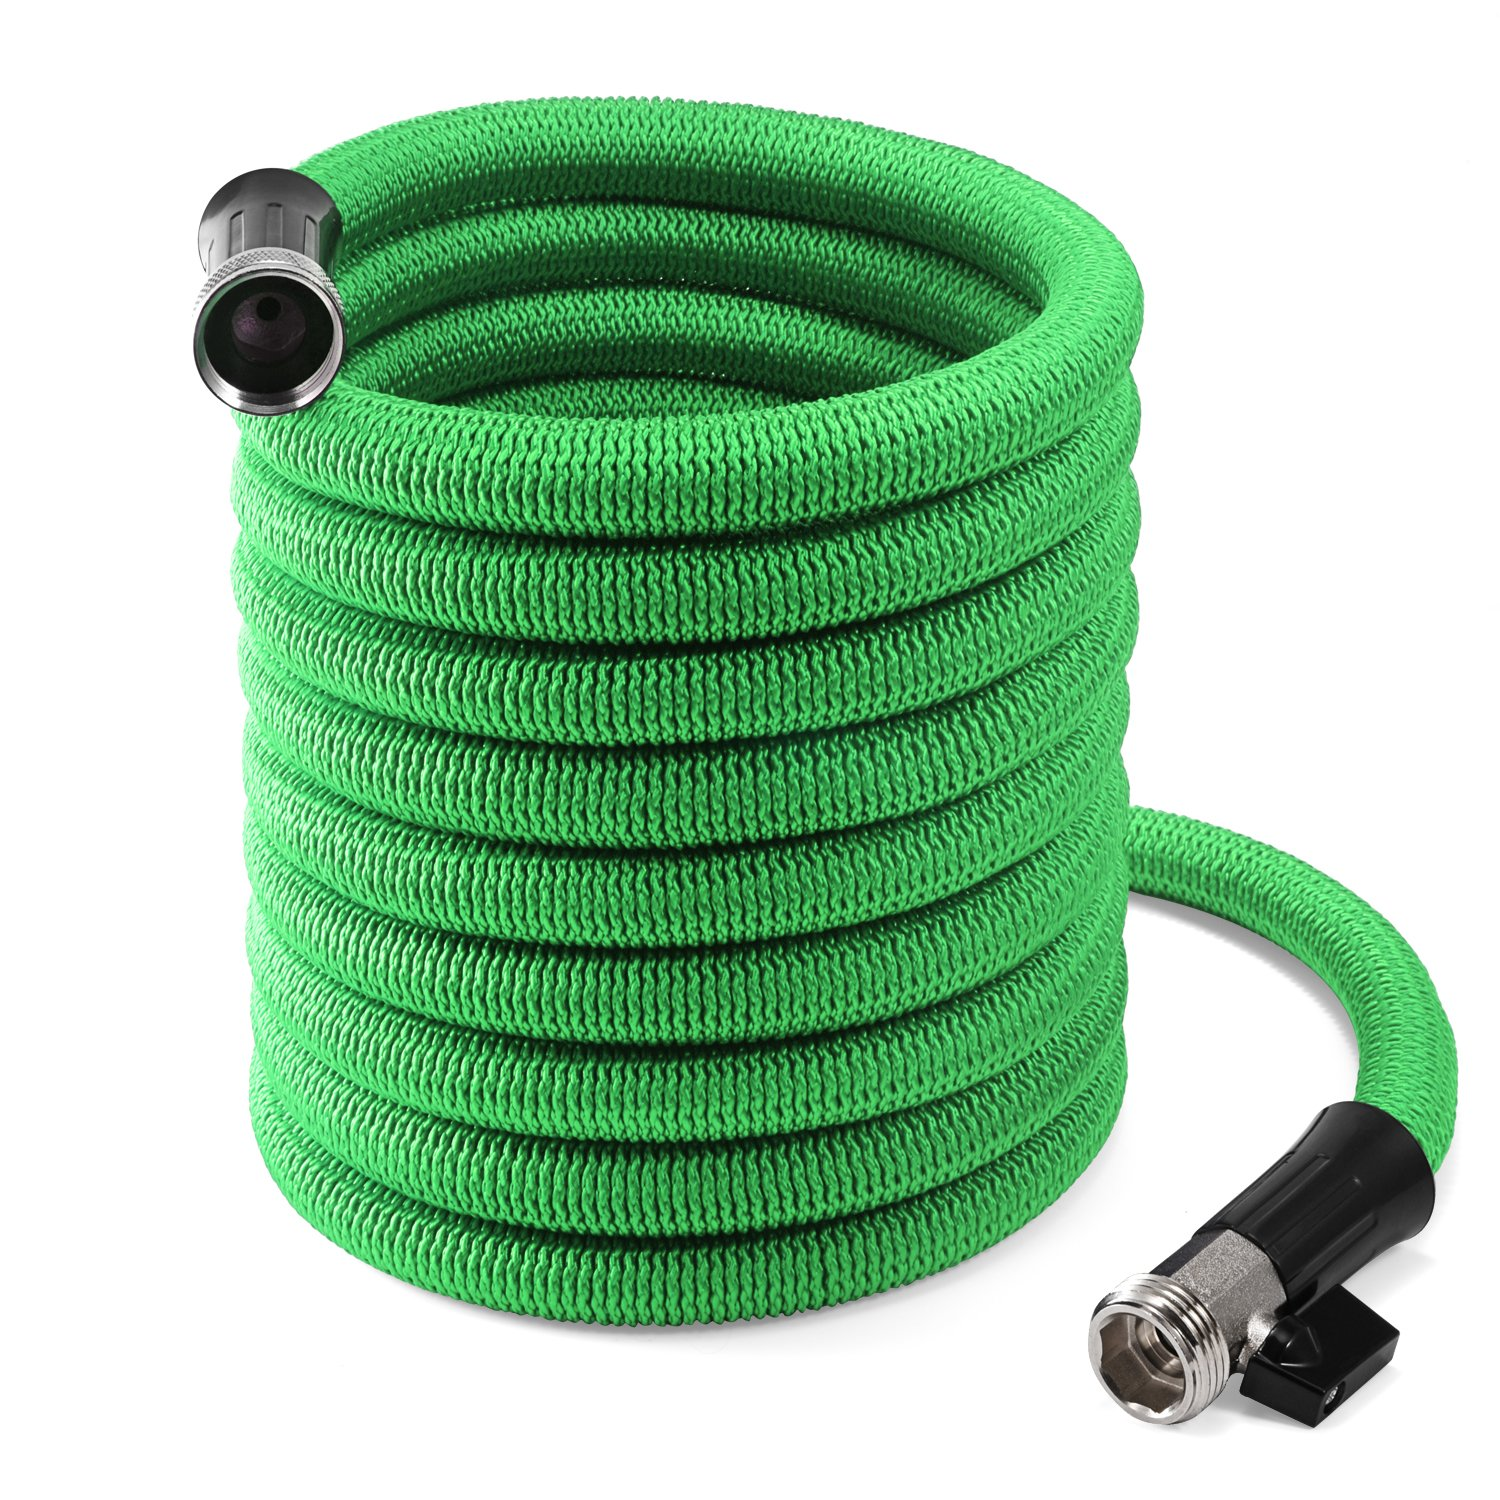 InGarden Garden Hose, 50 Ft Expandable Garden Water Hose Set With 3/4 Inch